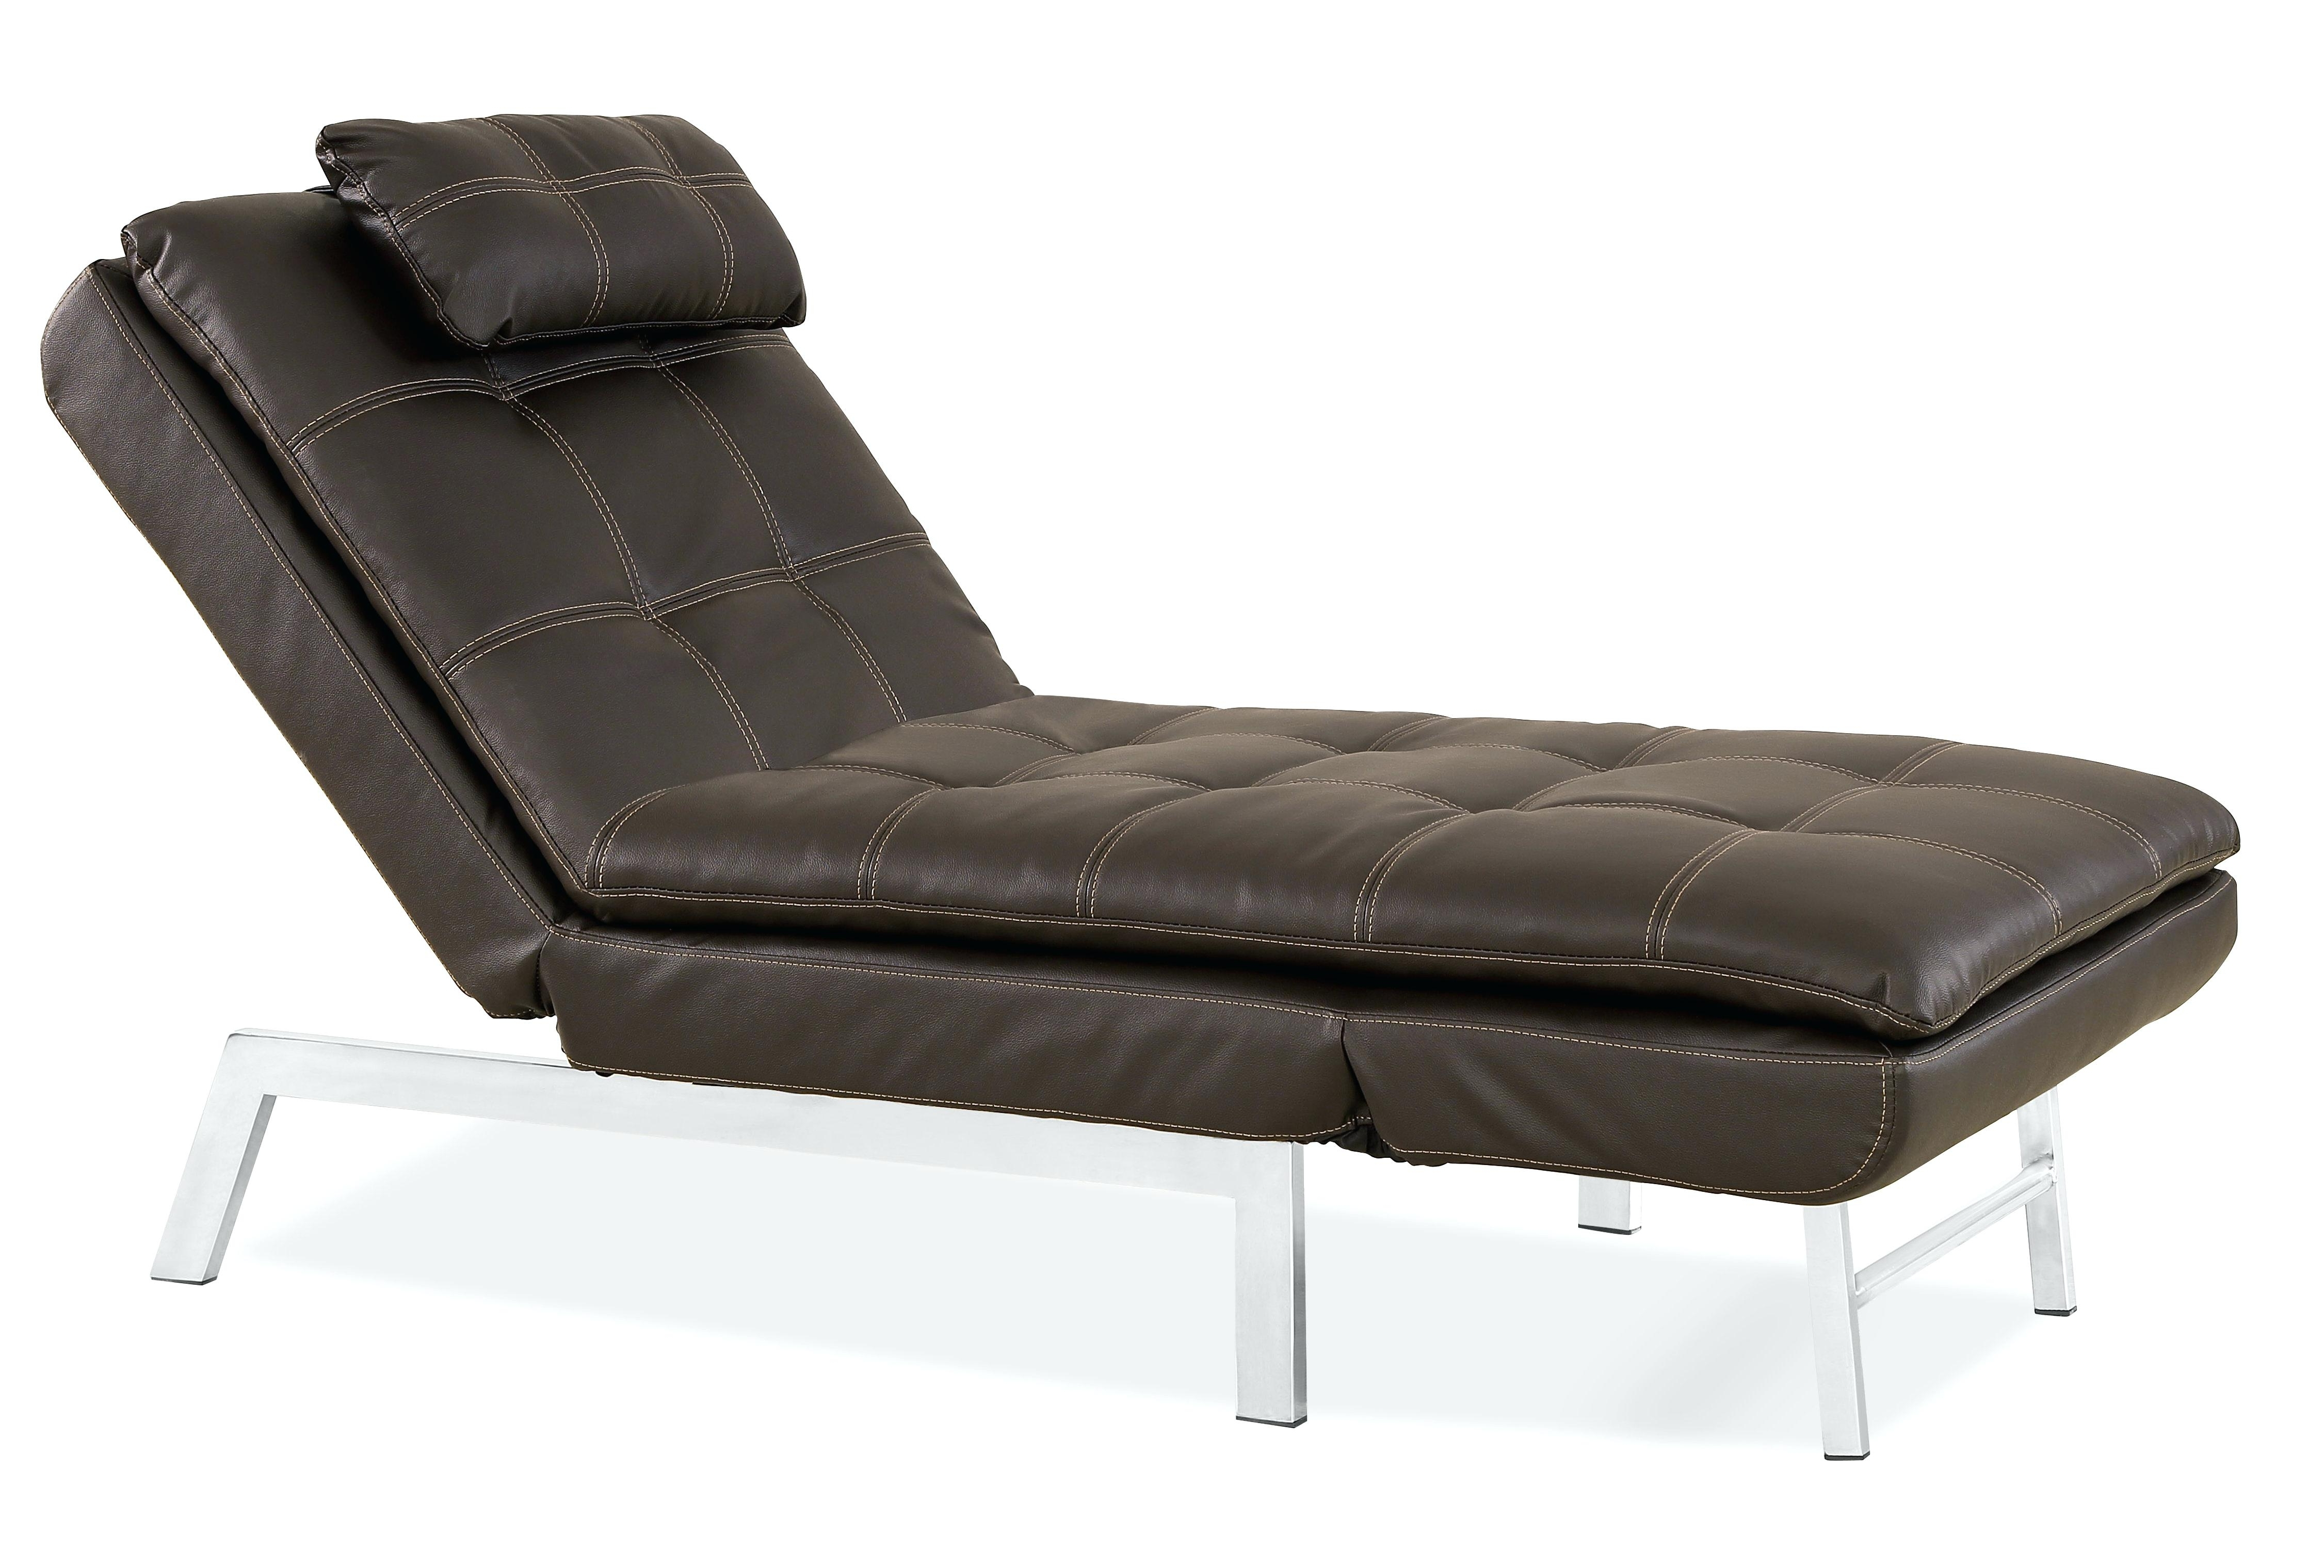 Reclining Chaise Lounge With Arms Chairs – Kharkovnews Pertaining To Favorite Reclining Chaise Lounge Chairs (View 13 of 15)